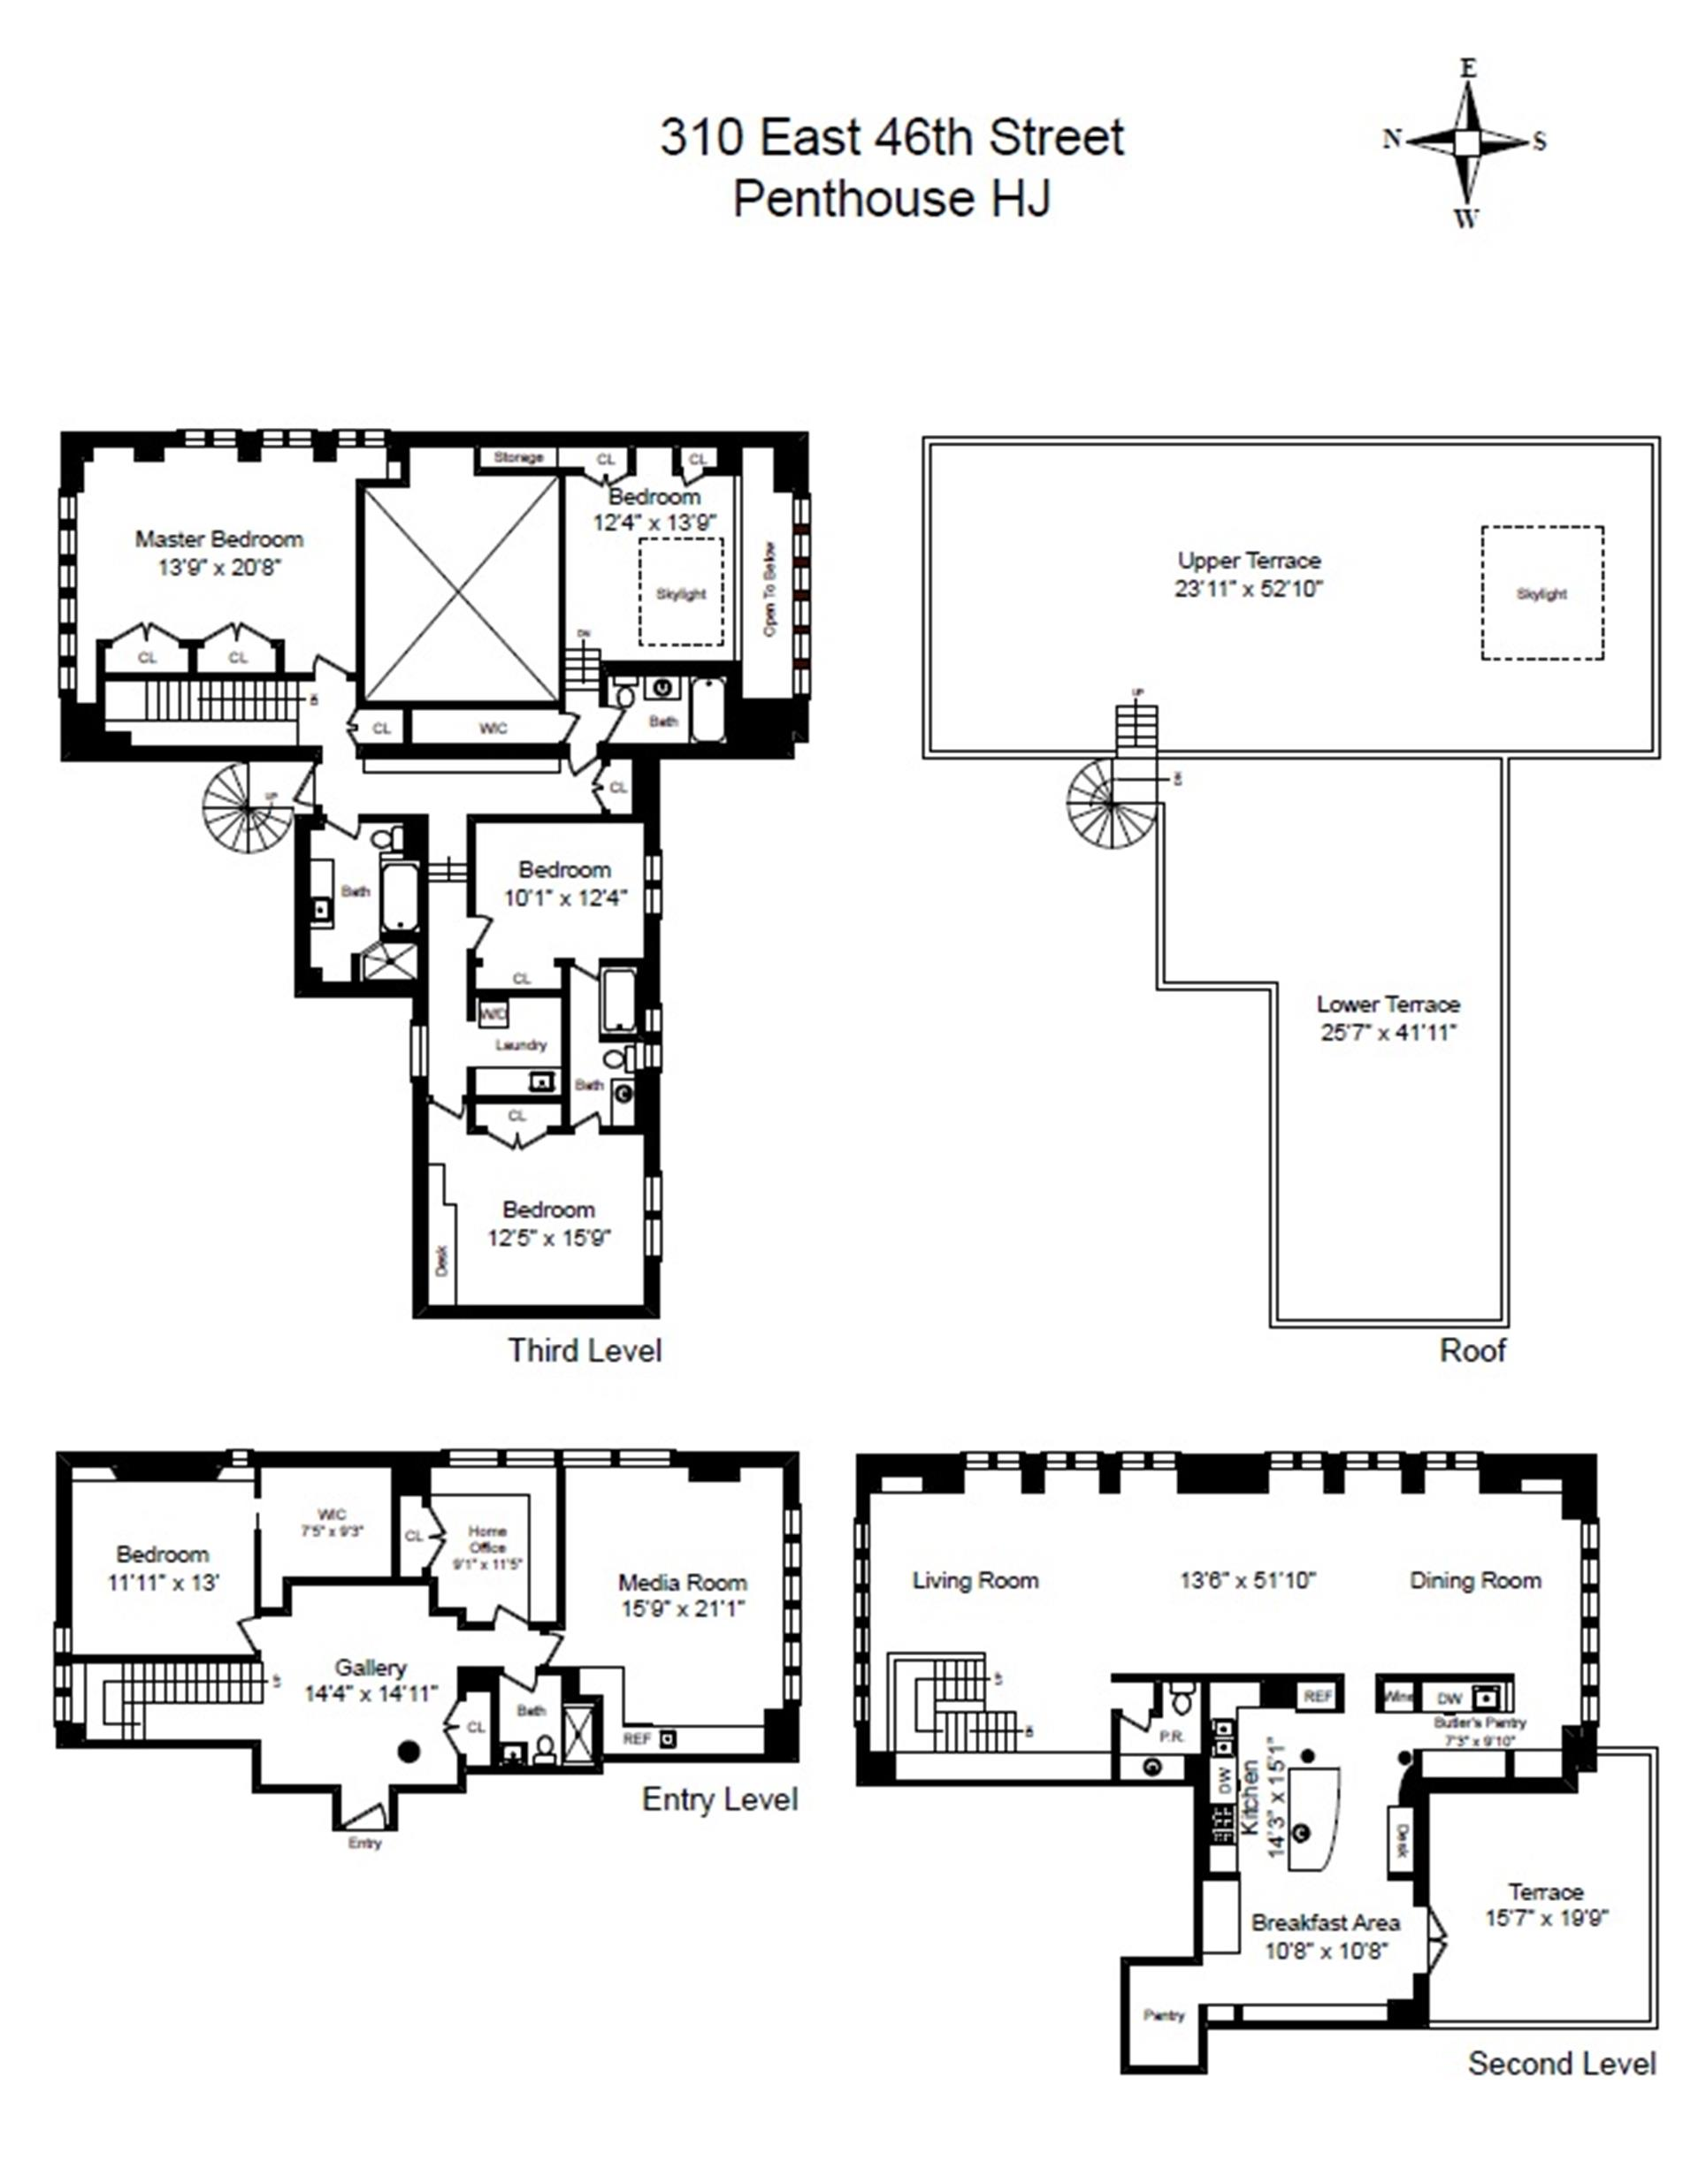 Floor plan of TURTLE BAY TOWERS, 310 East 46th St, PHHJ - Turtle Bay, New York